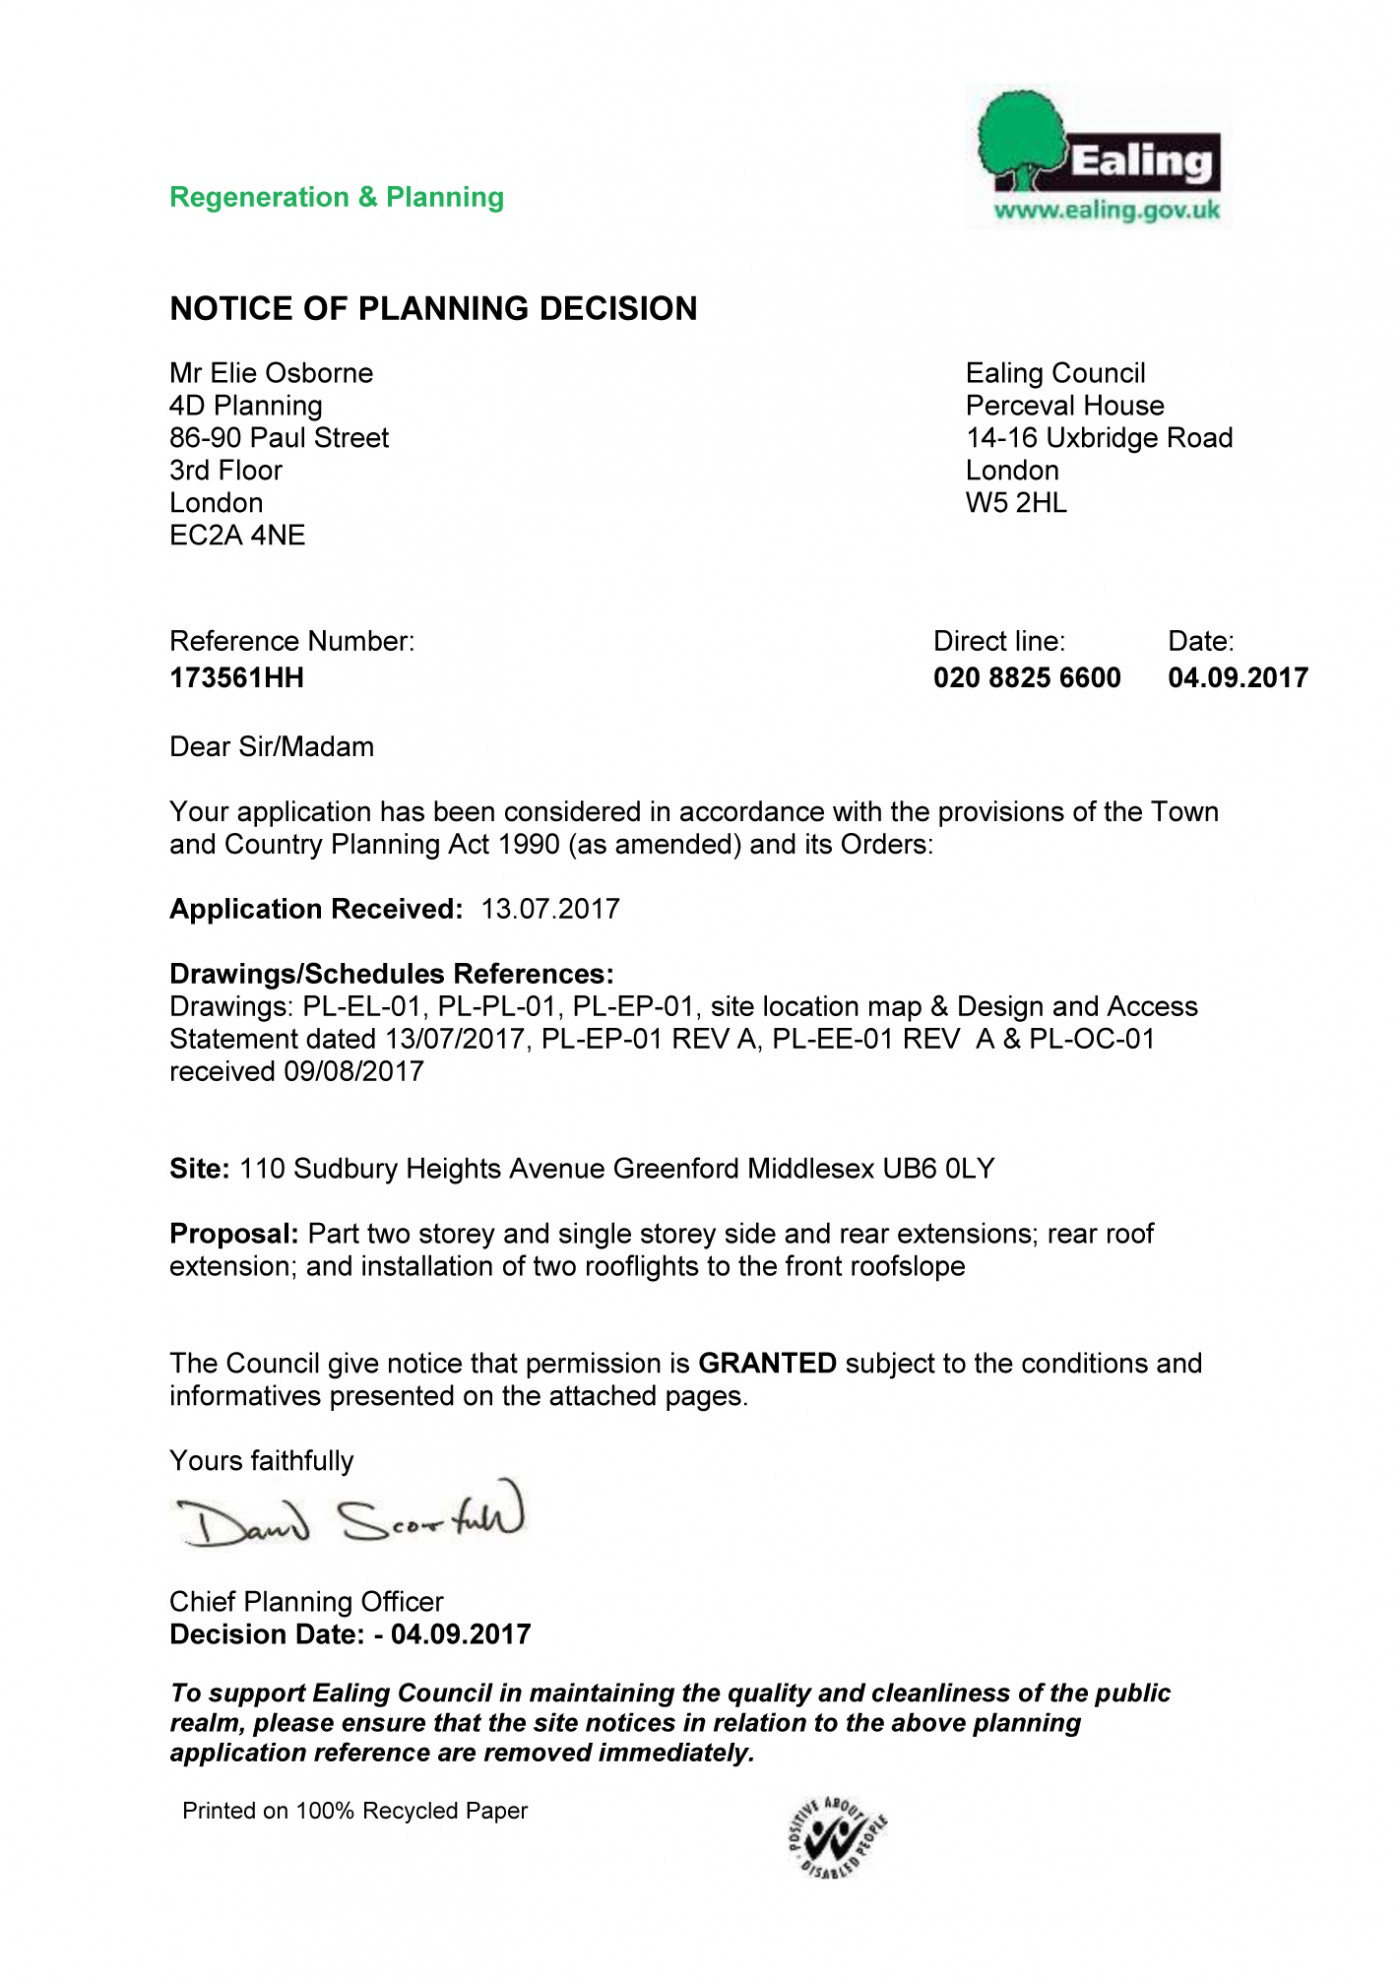 Decision Notice - Ealing Council Granted Permission